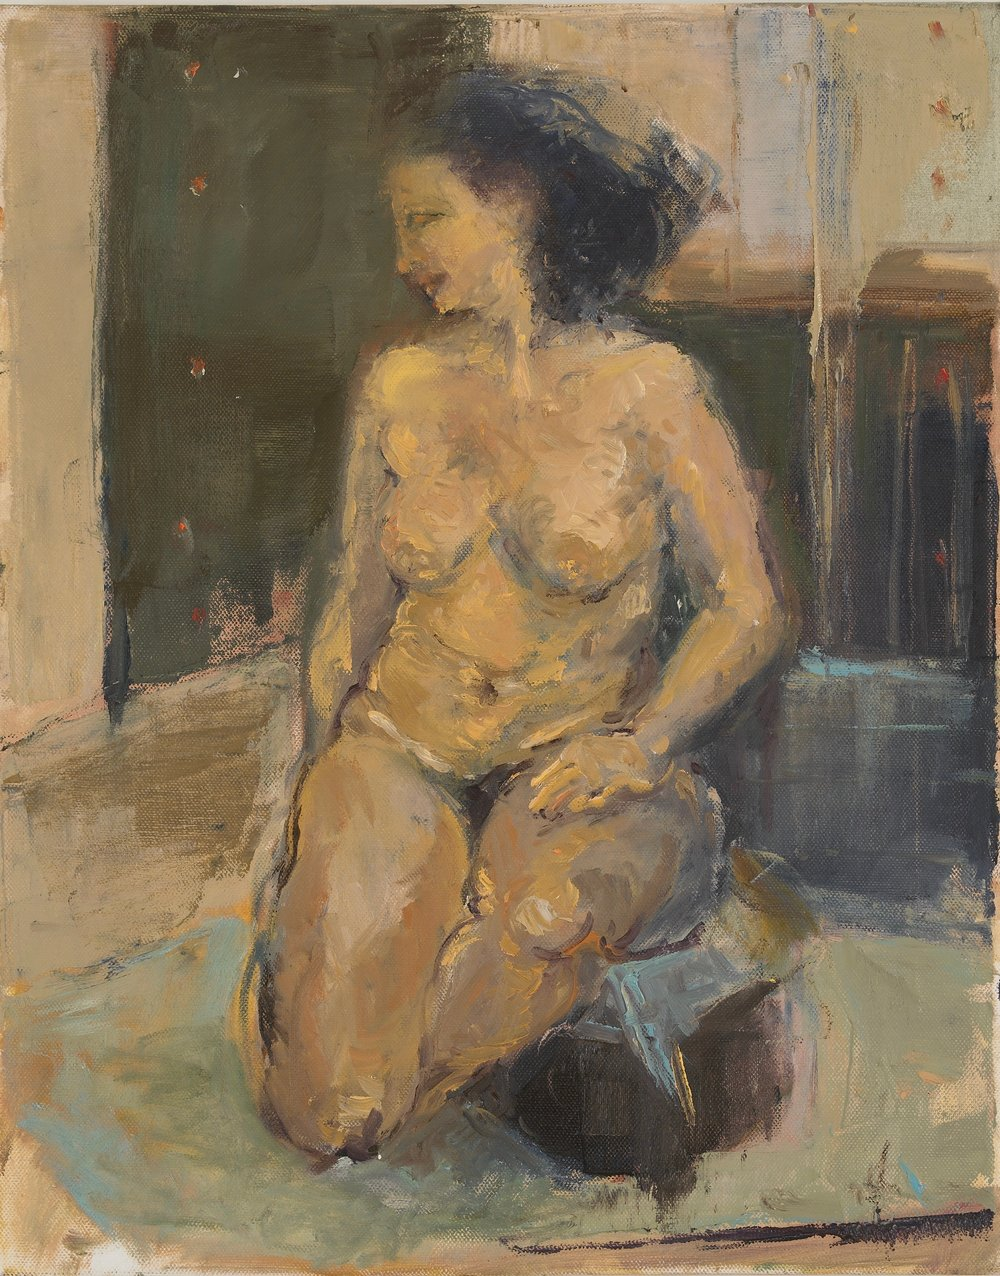 Nude on Short Stool  14X16 - Oil on Board